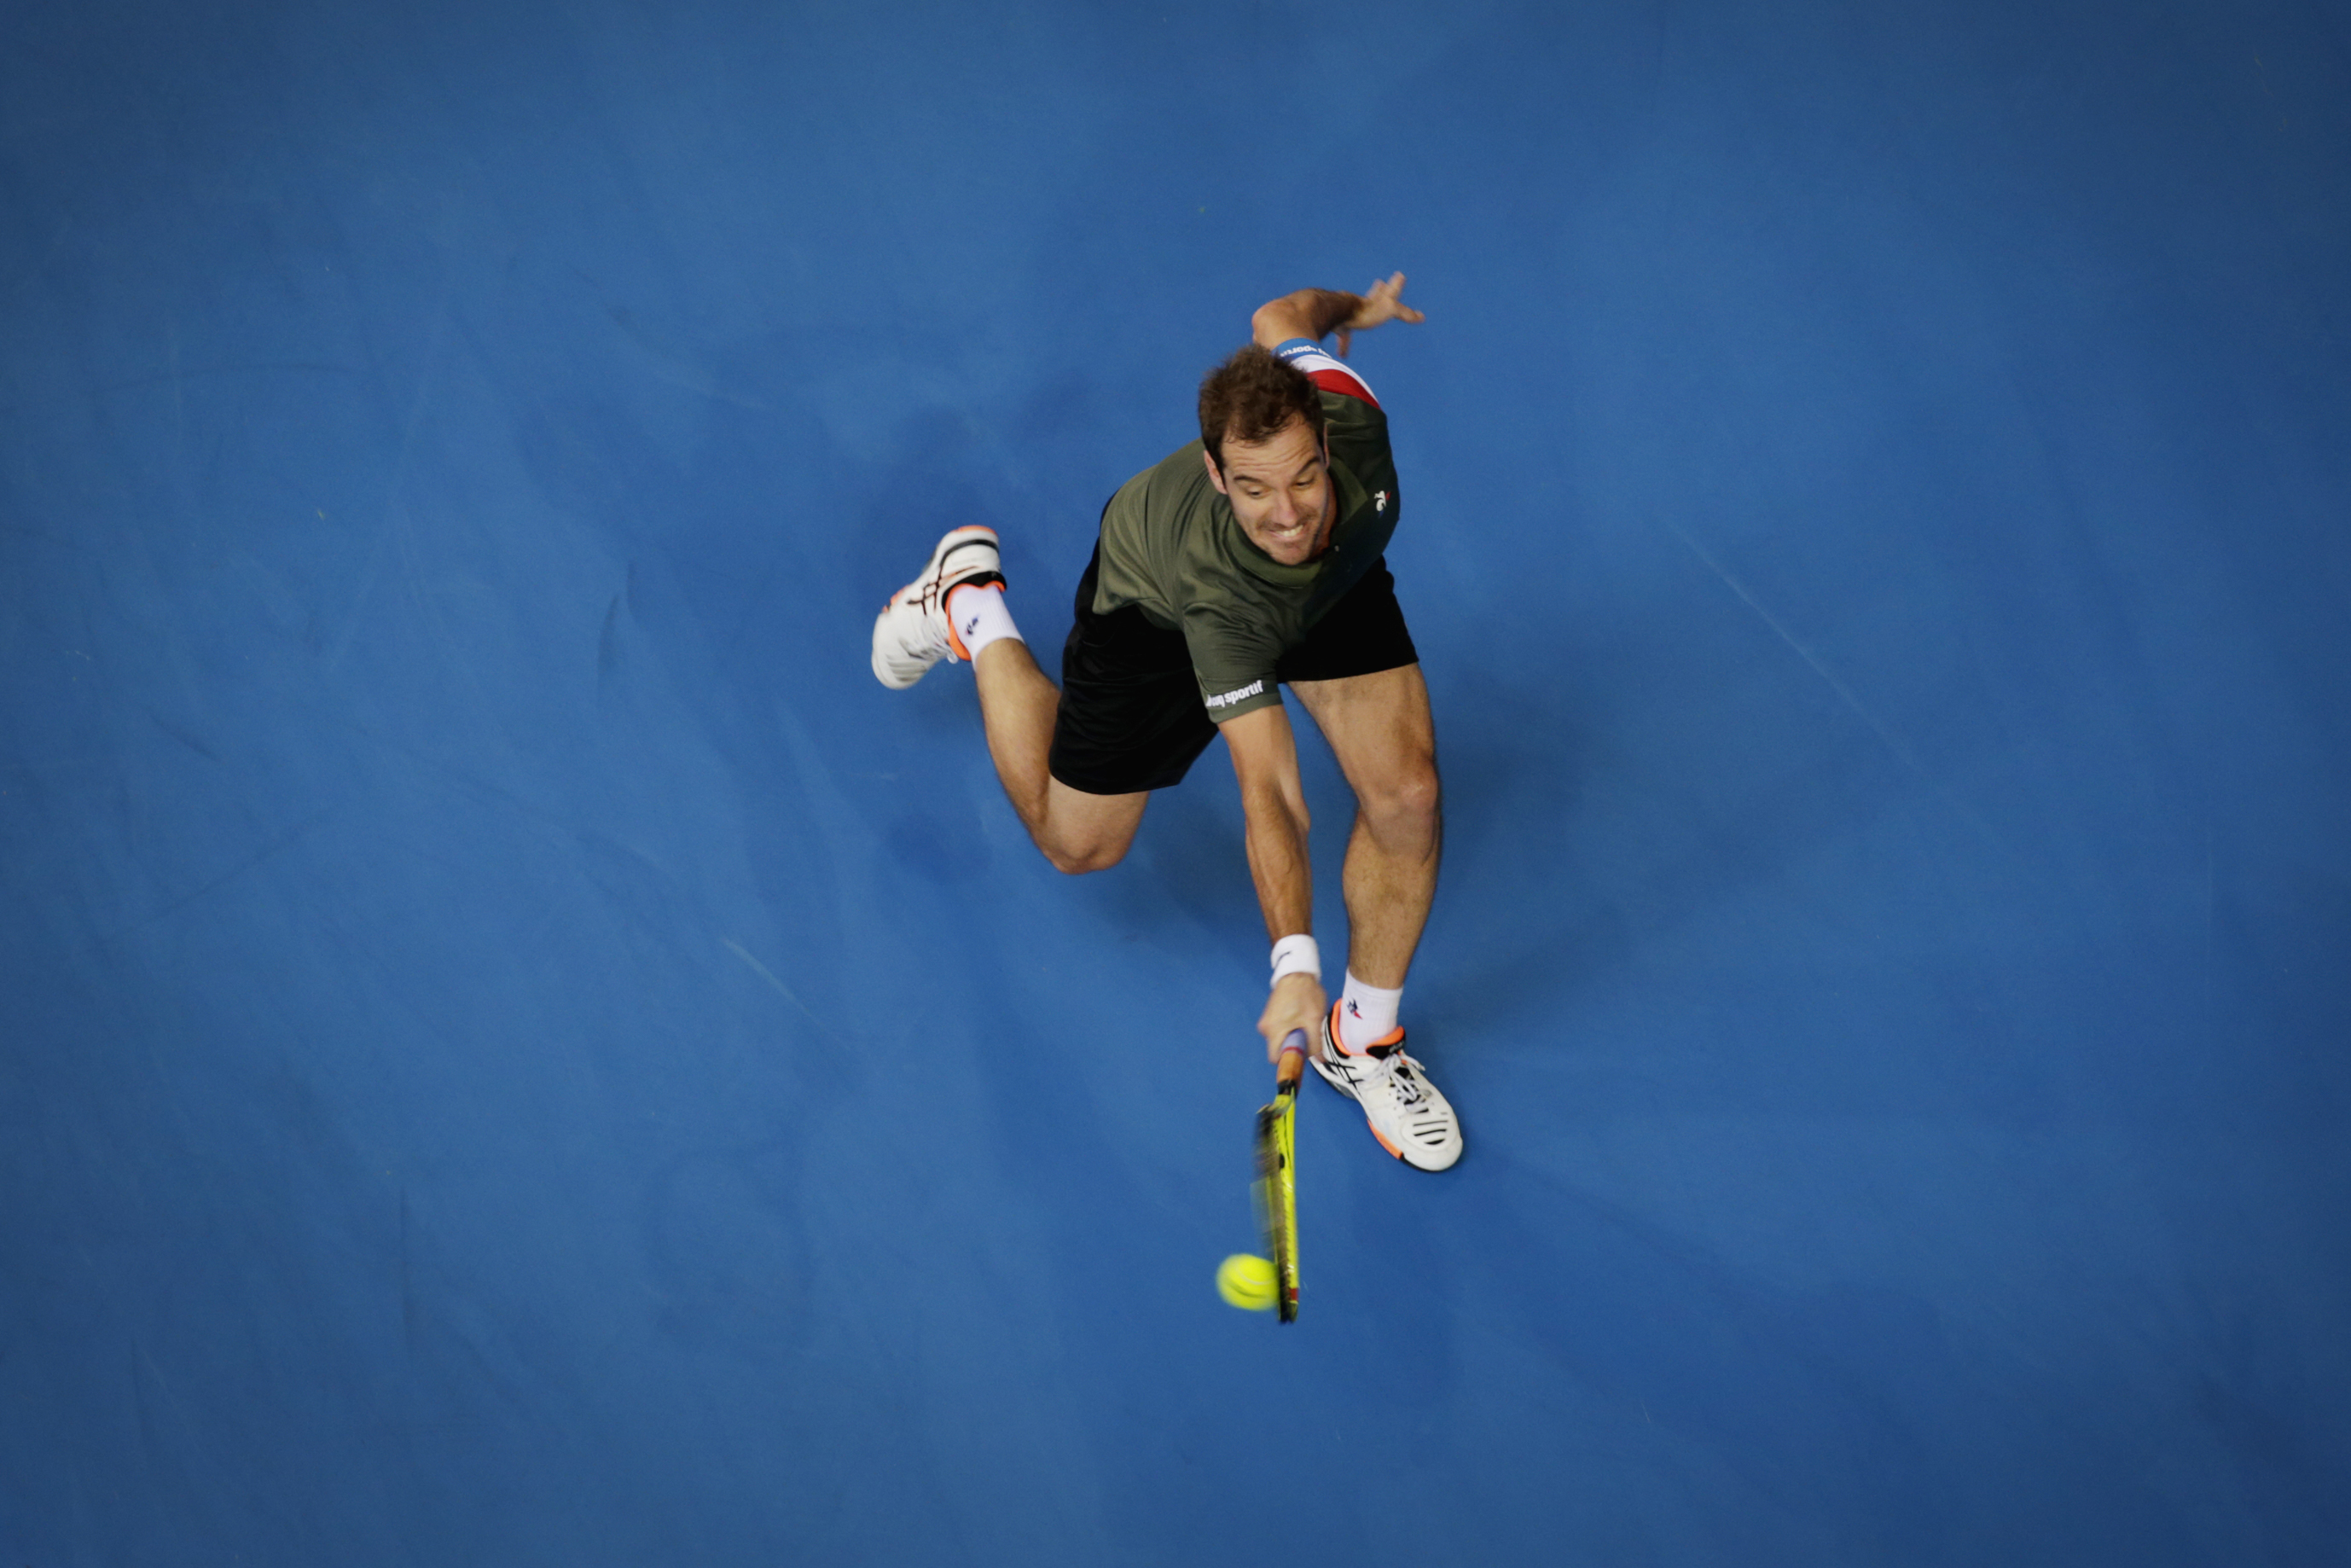 Pictured Richard Gasquet (France)  in the Hopman Cup final against Jack Sock (USA)